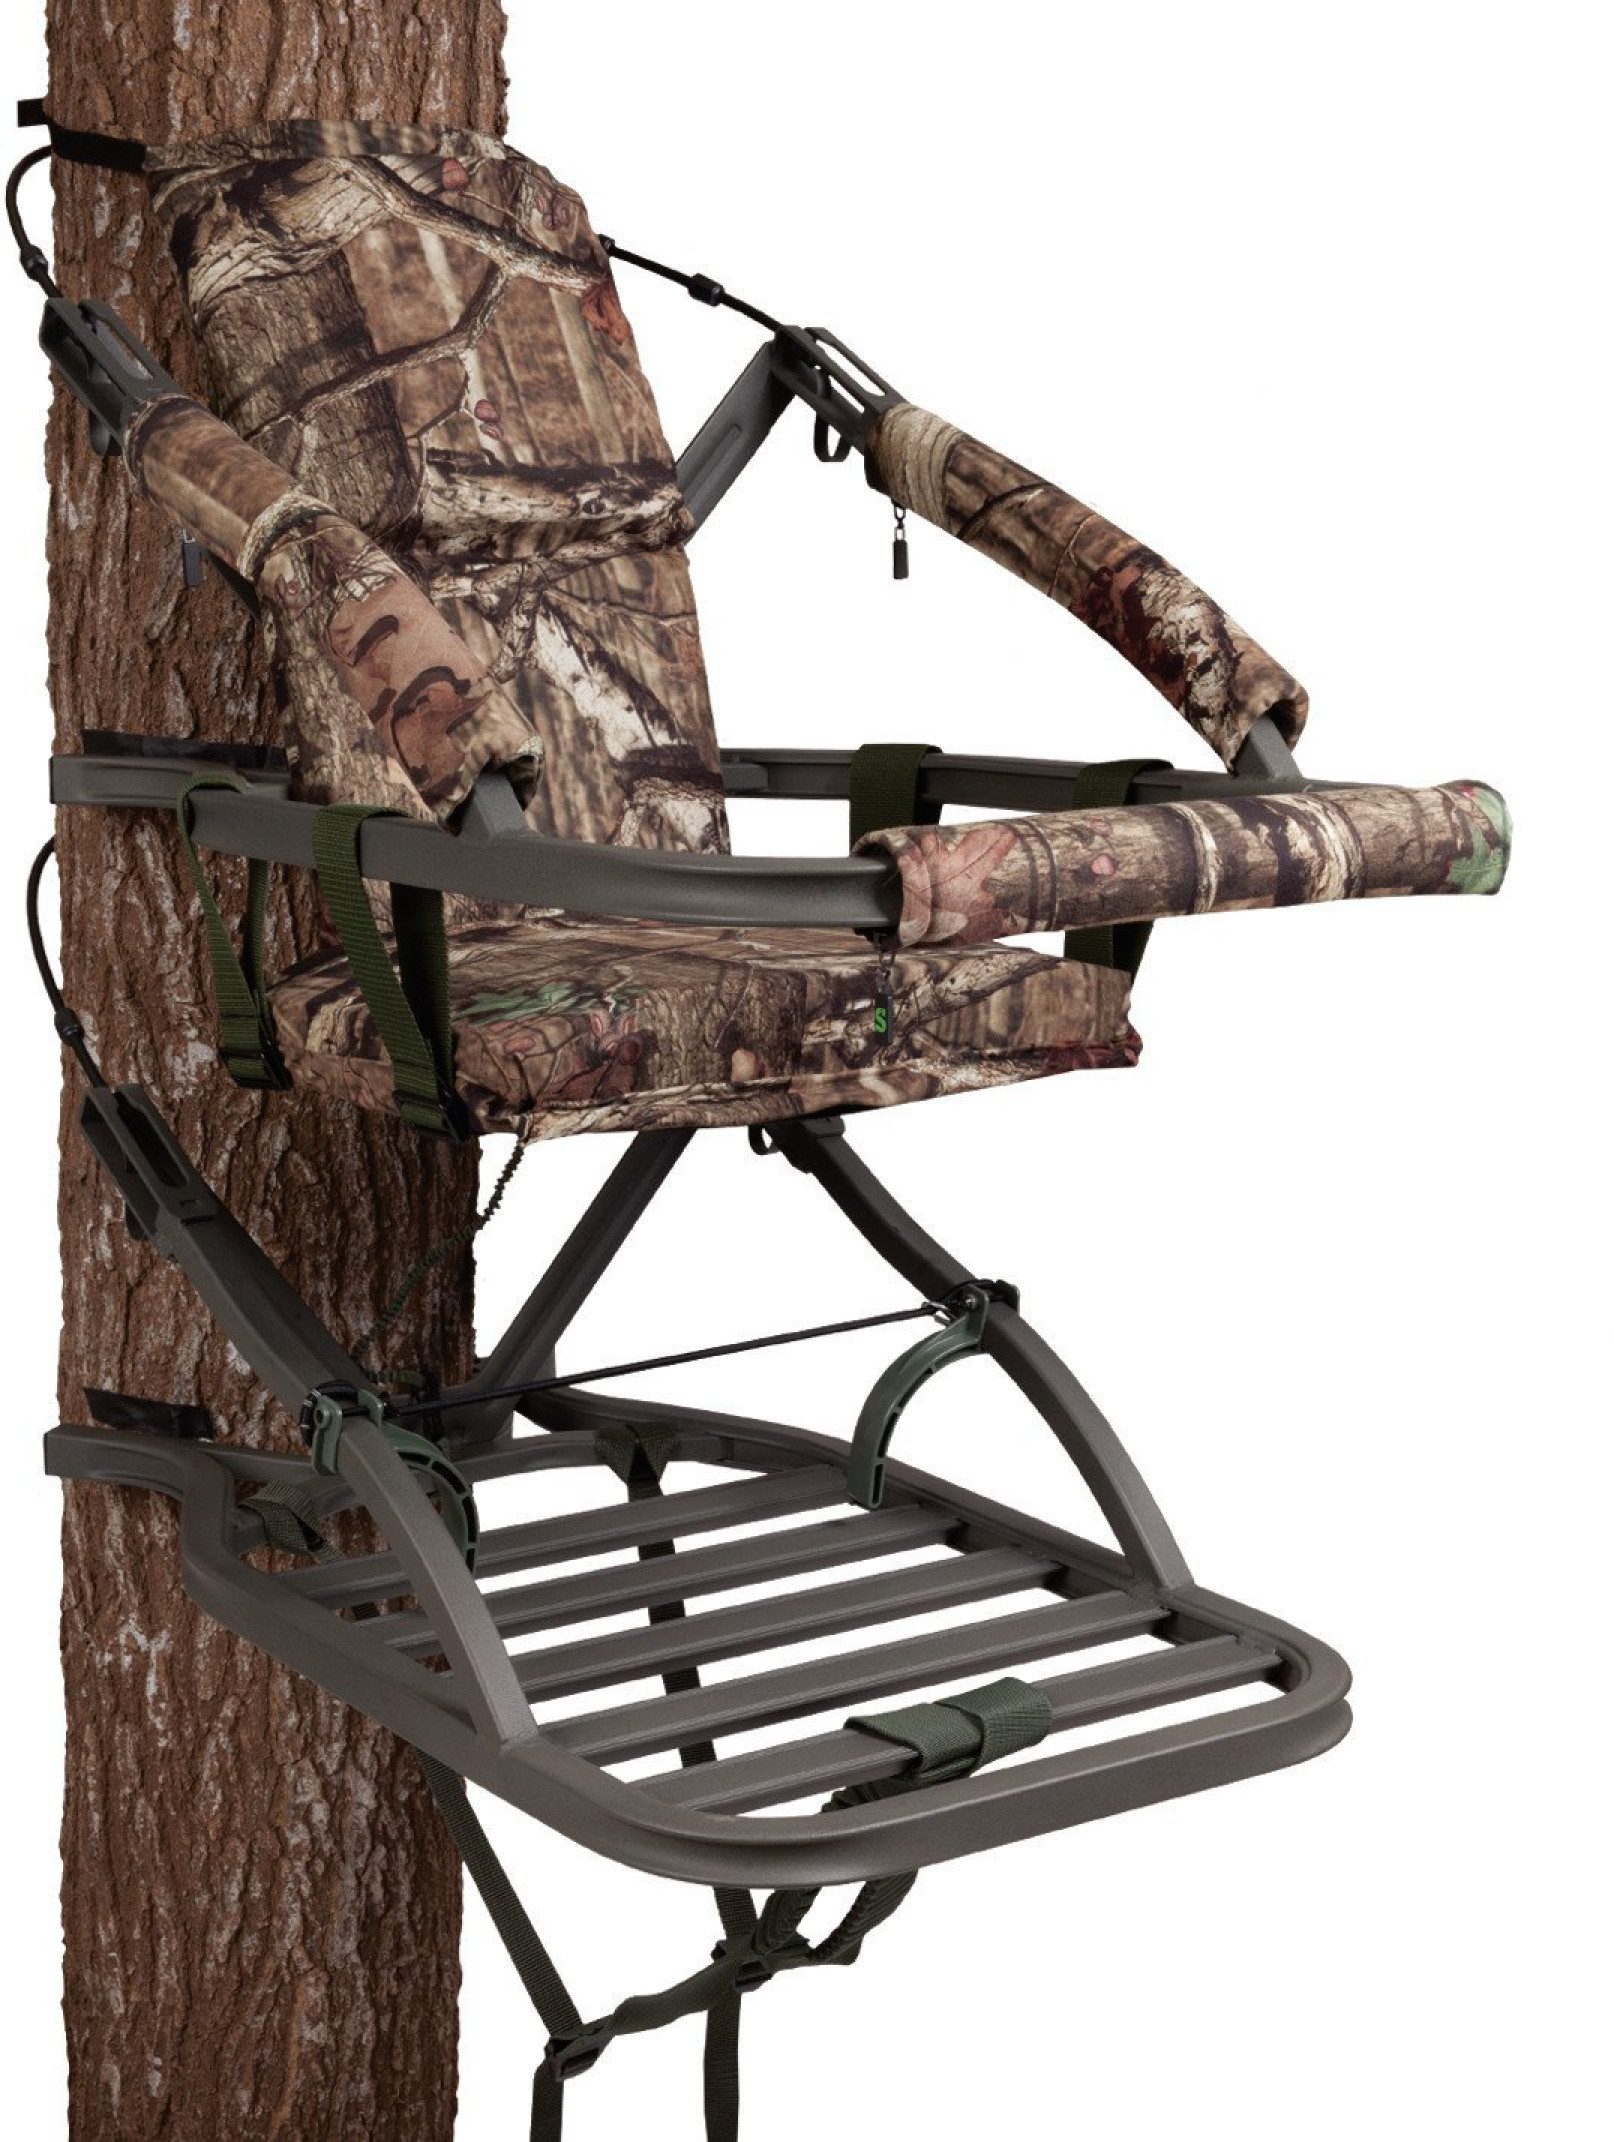 Fusion Climbing Tree Stand | Big Game Treestands - YouTube